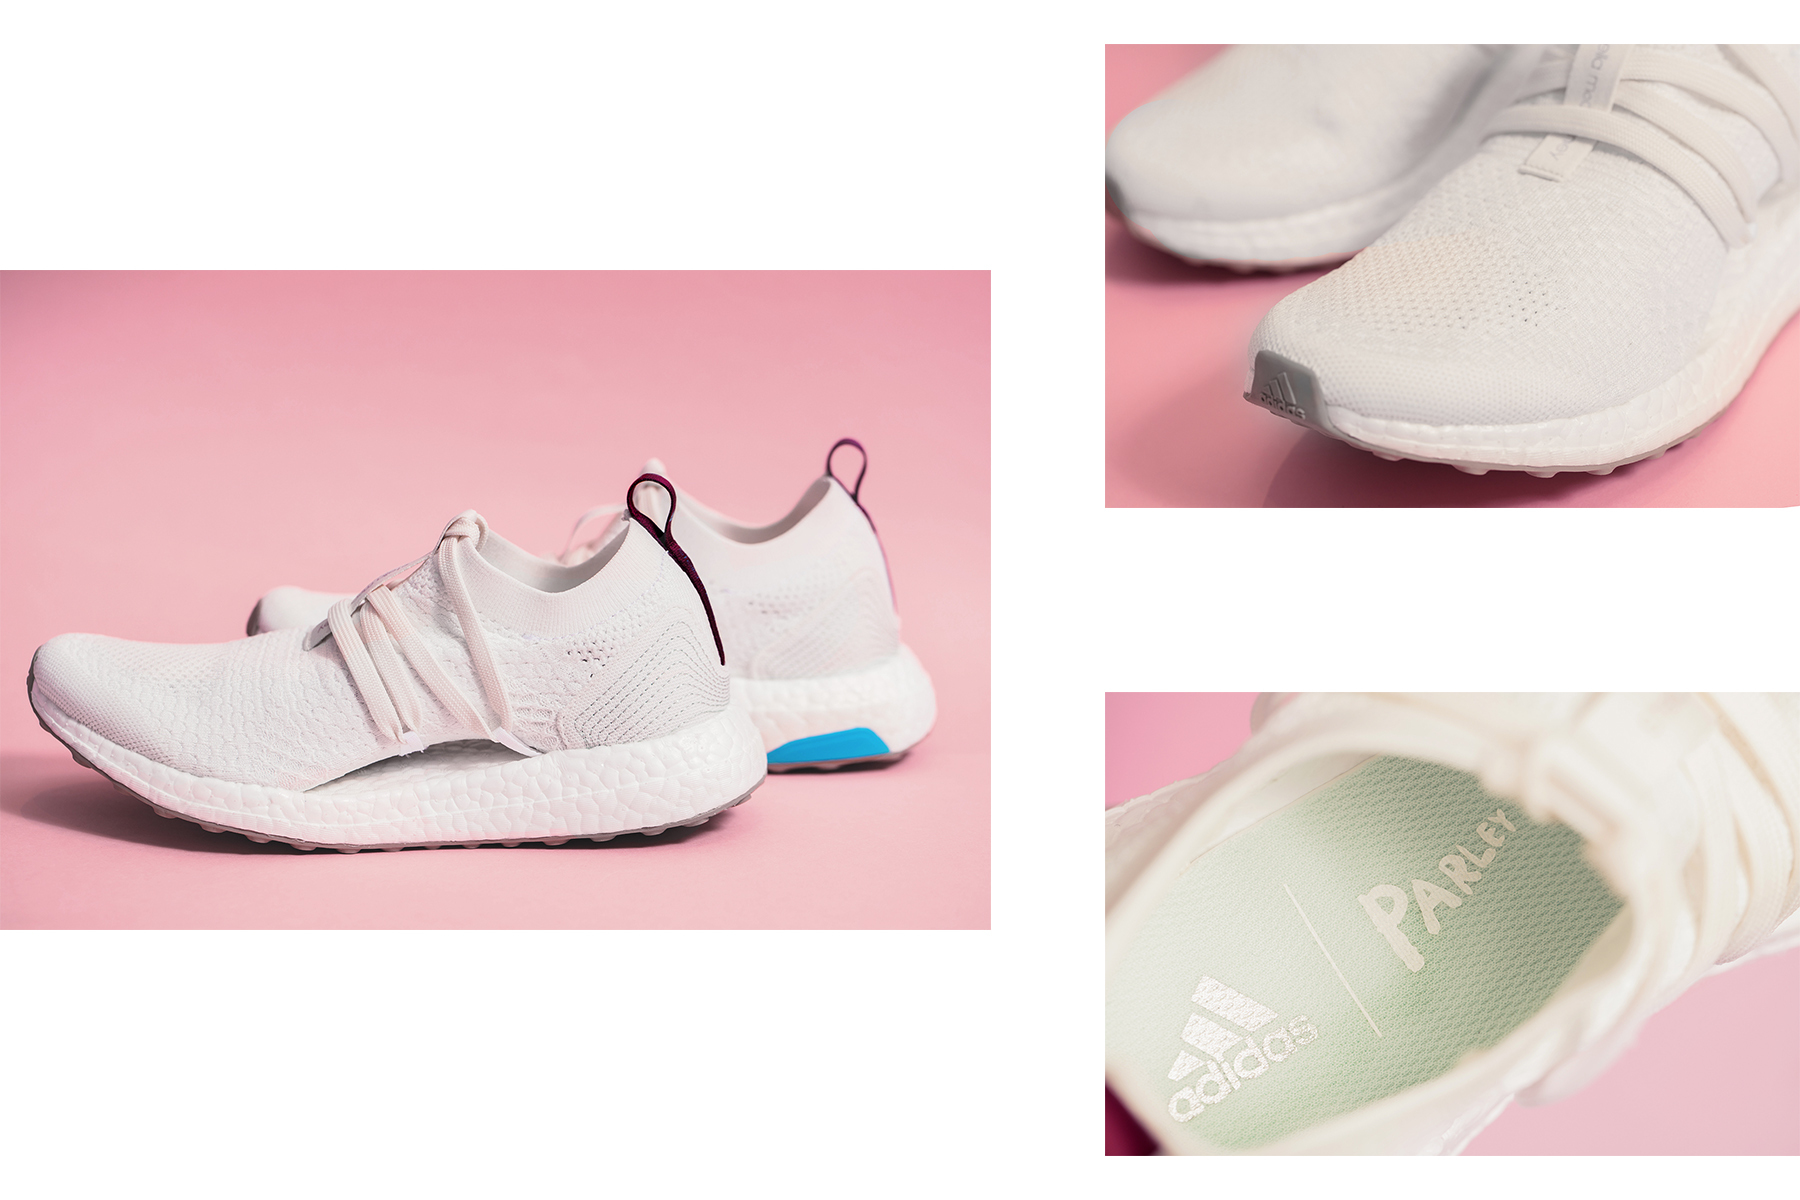 6516c041aa9 adidas by Stella Mccartney s coming Ultra BOOST X running shoe. adidas x  Parley for the ...